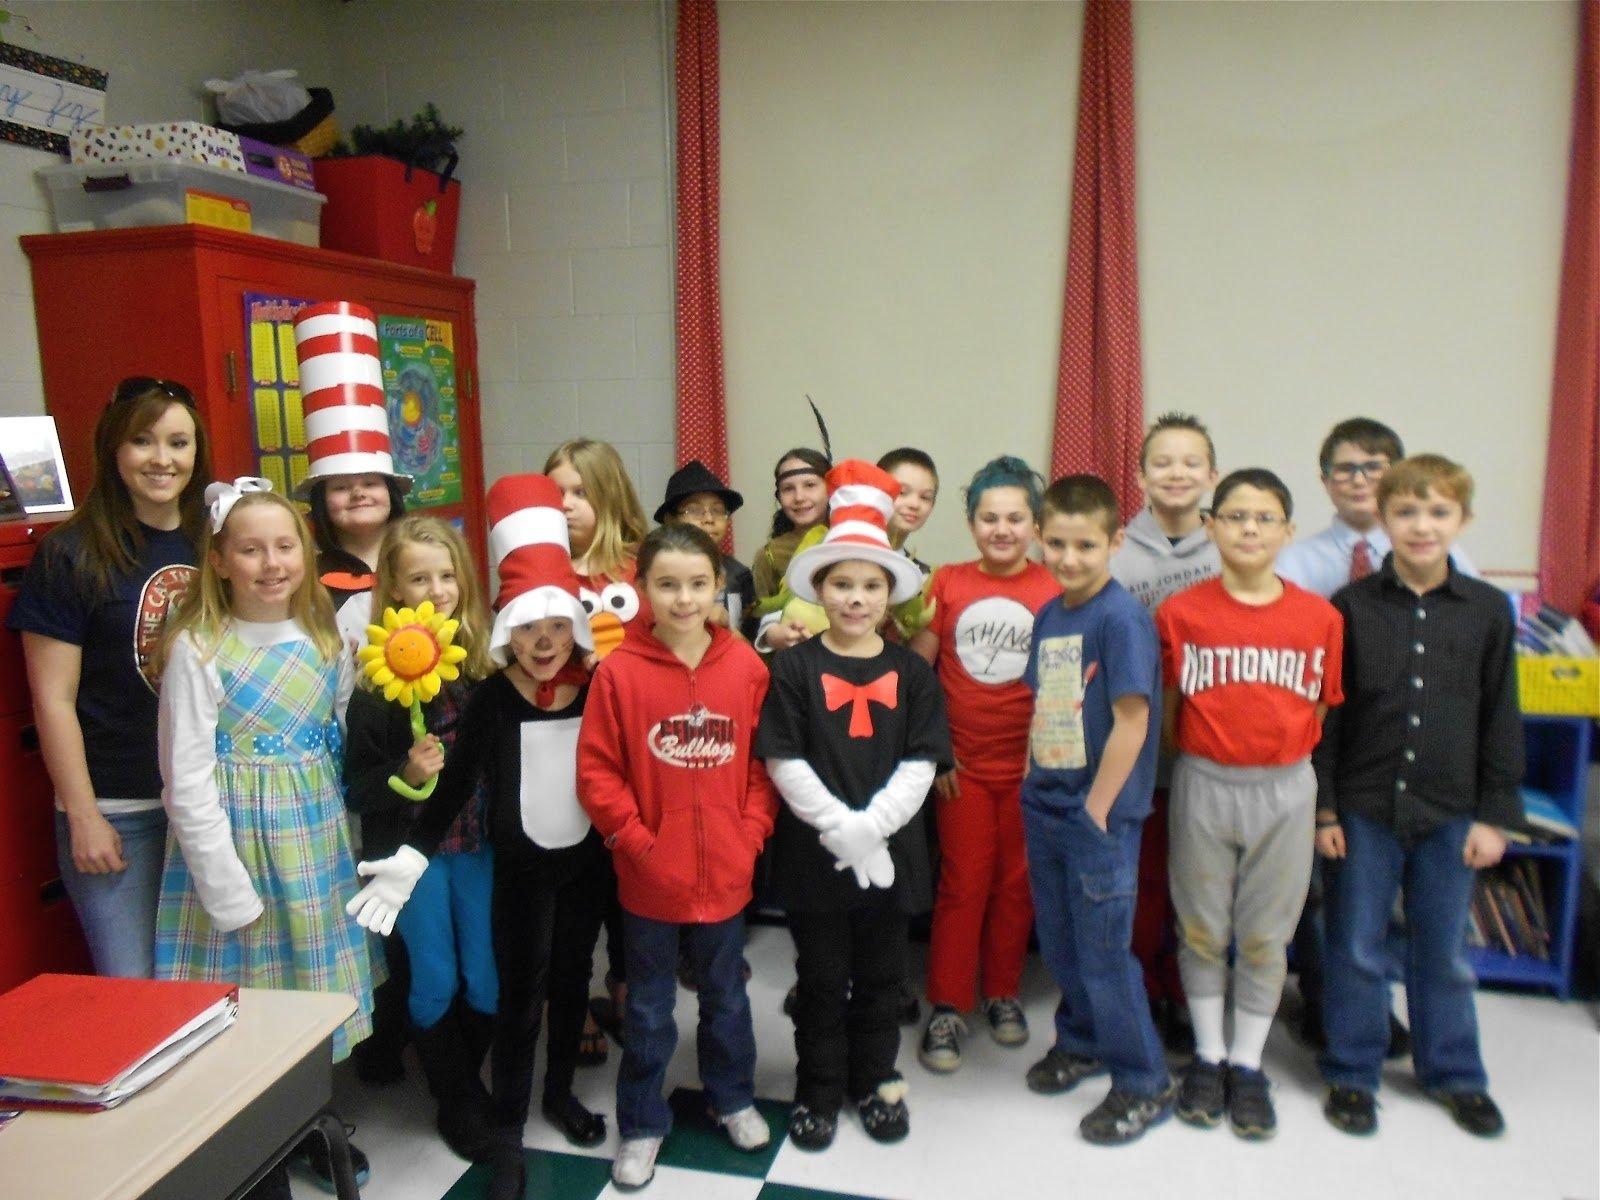 mrs mcdonald#039;s 4th grade: march 2013, dr seuss characters